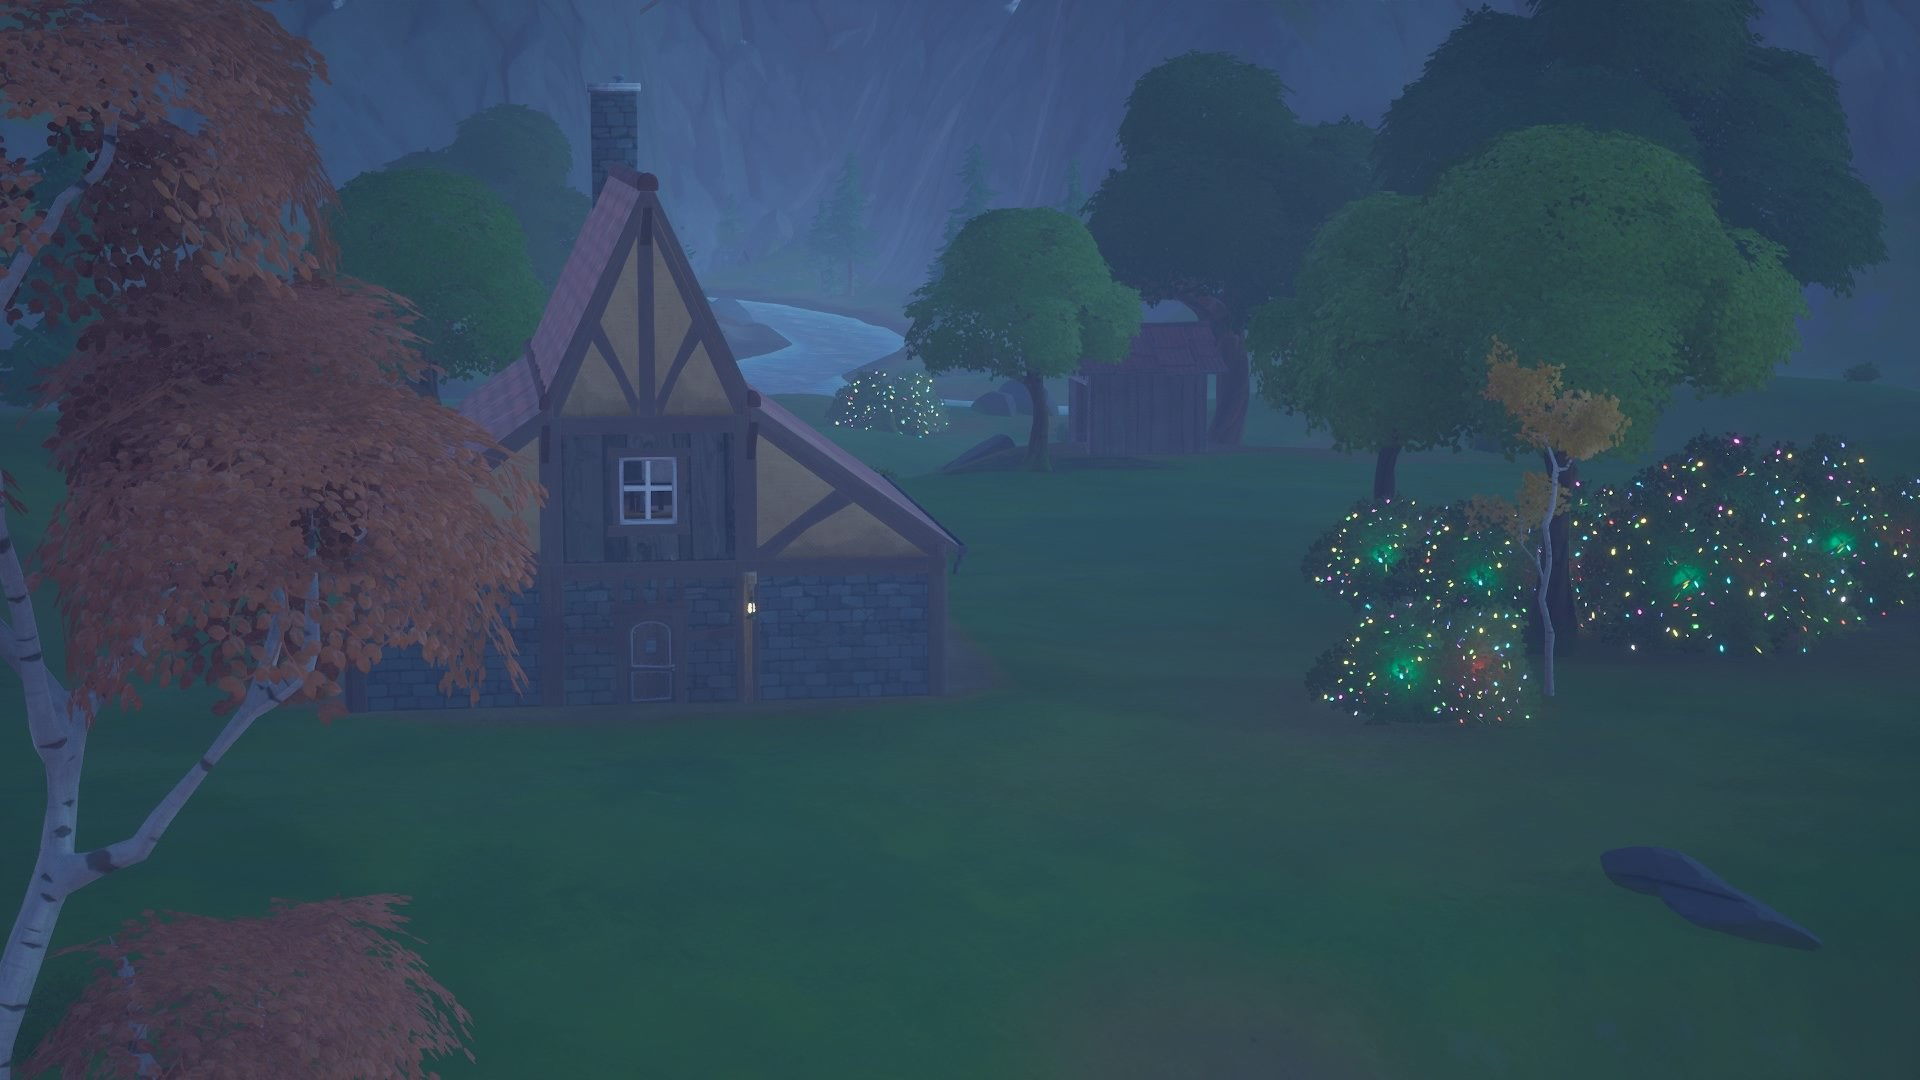 WInter houses & Christmas Bushes